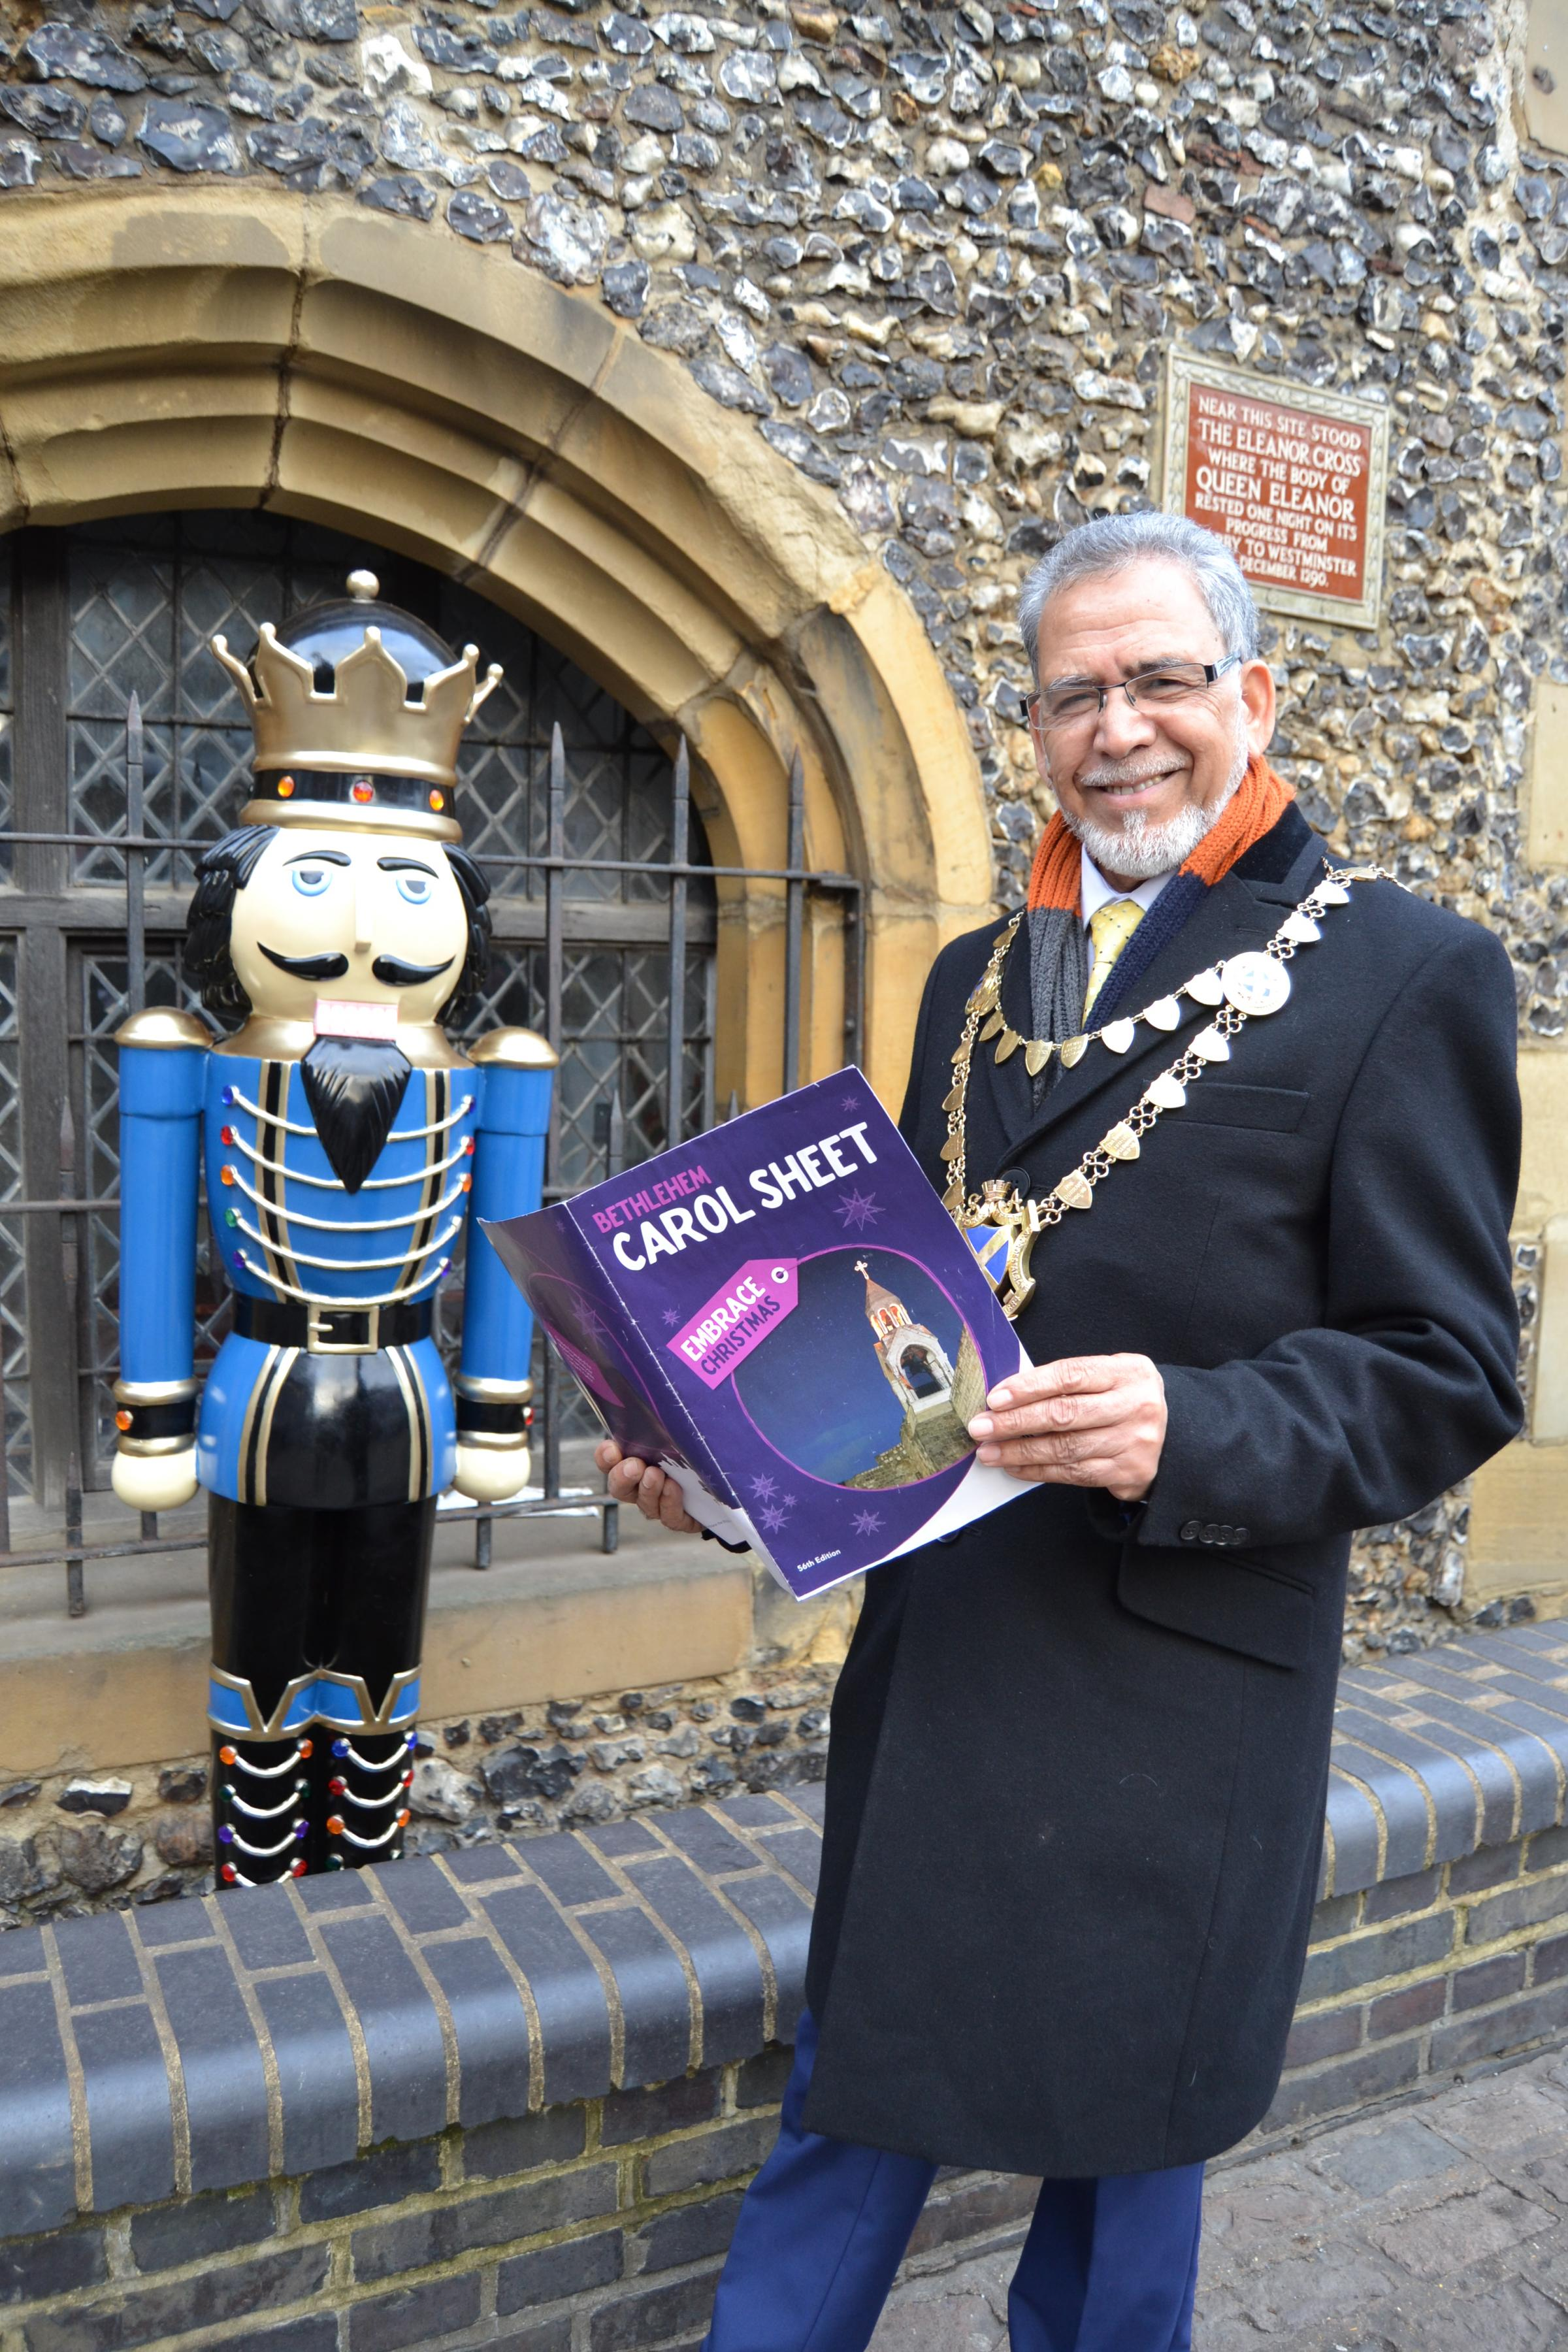 Sing carols with the Mayor this Christmas